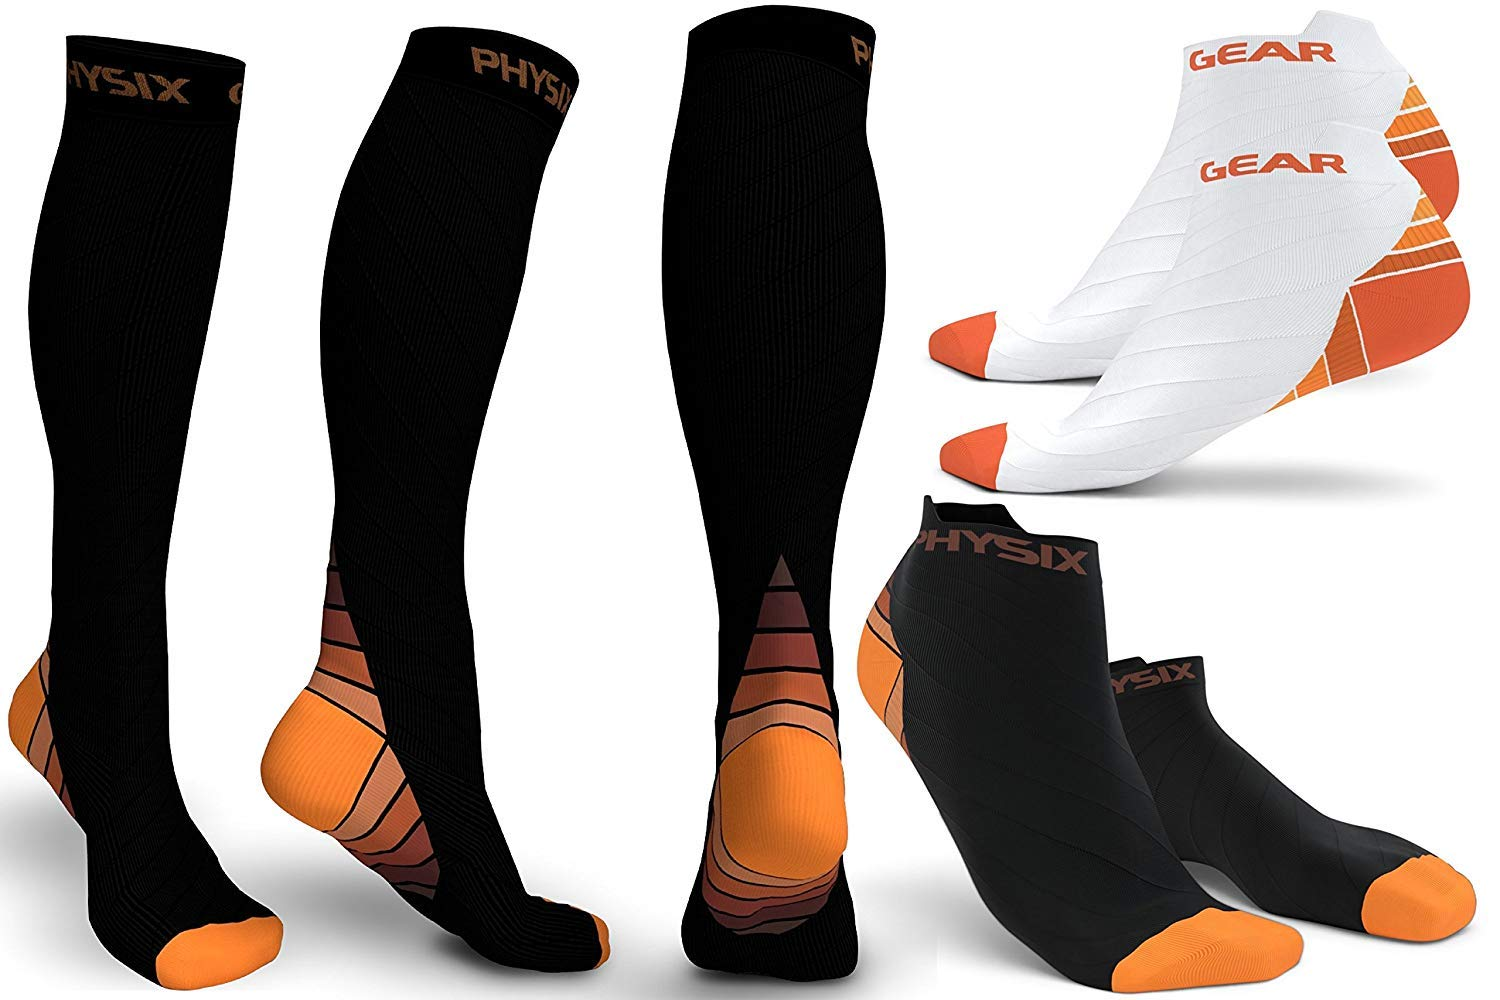 3 Pack Compression Socks for Men & Women 20-30 mmhg, Best Graduated Athletic Fit for Running Nurses Shin Splints Flight Travel & Maternity Pregnancy - Boost Stamina Circulation & Recovery ORG LXL